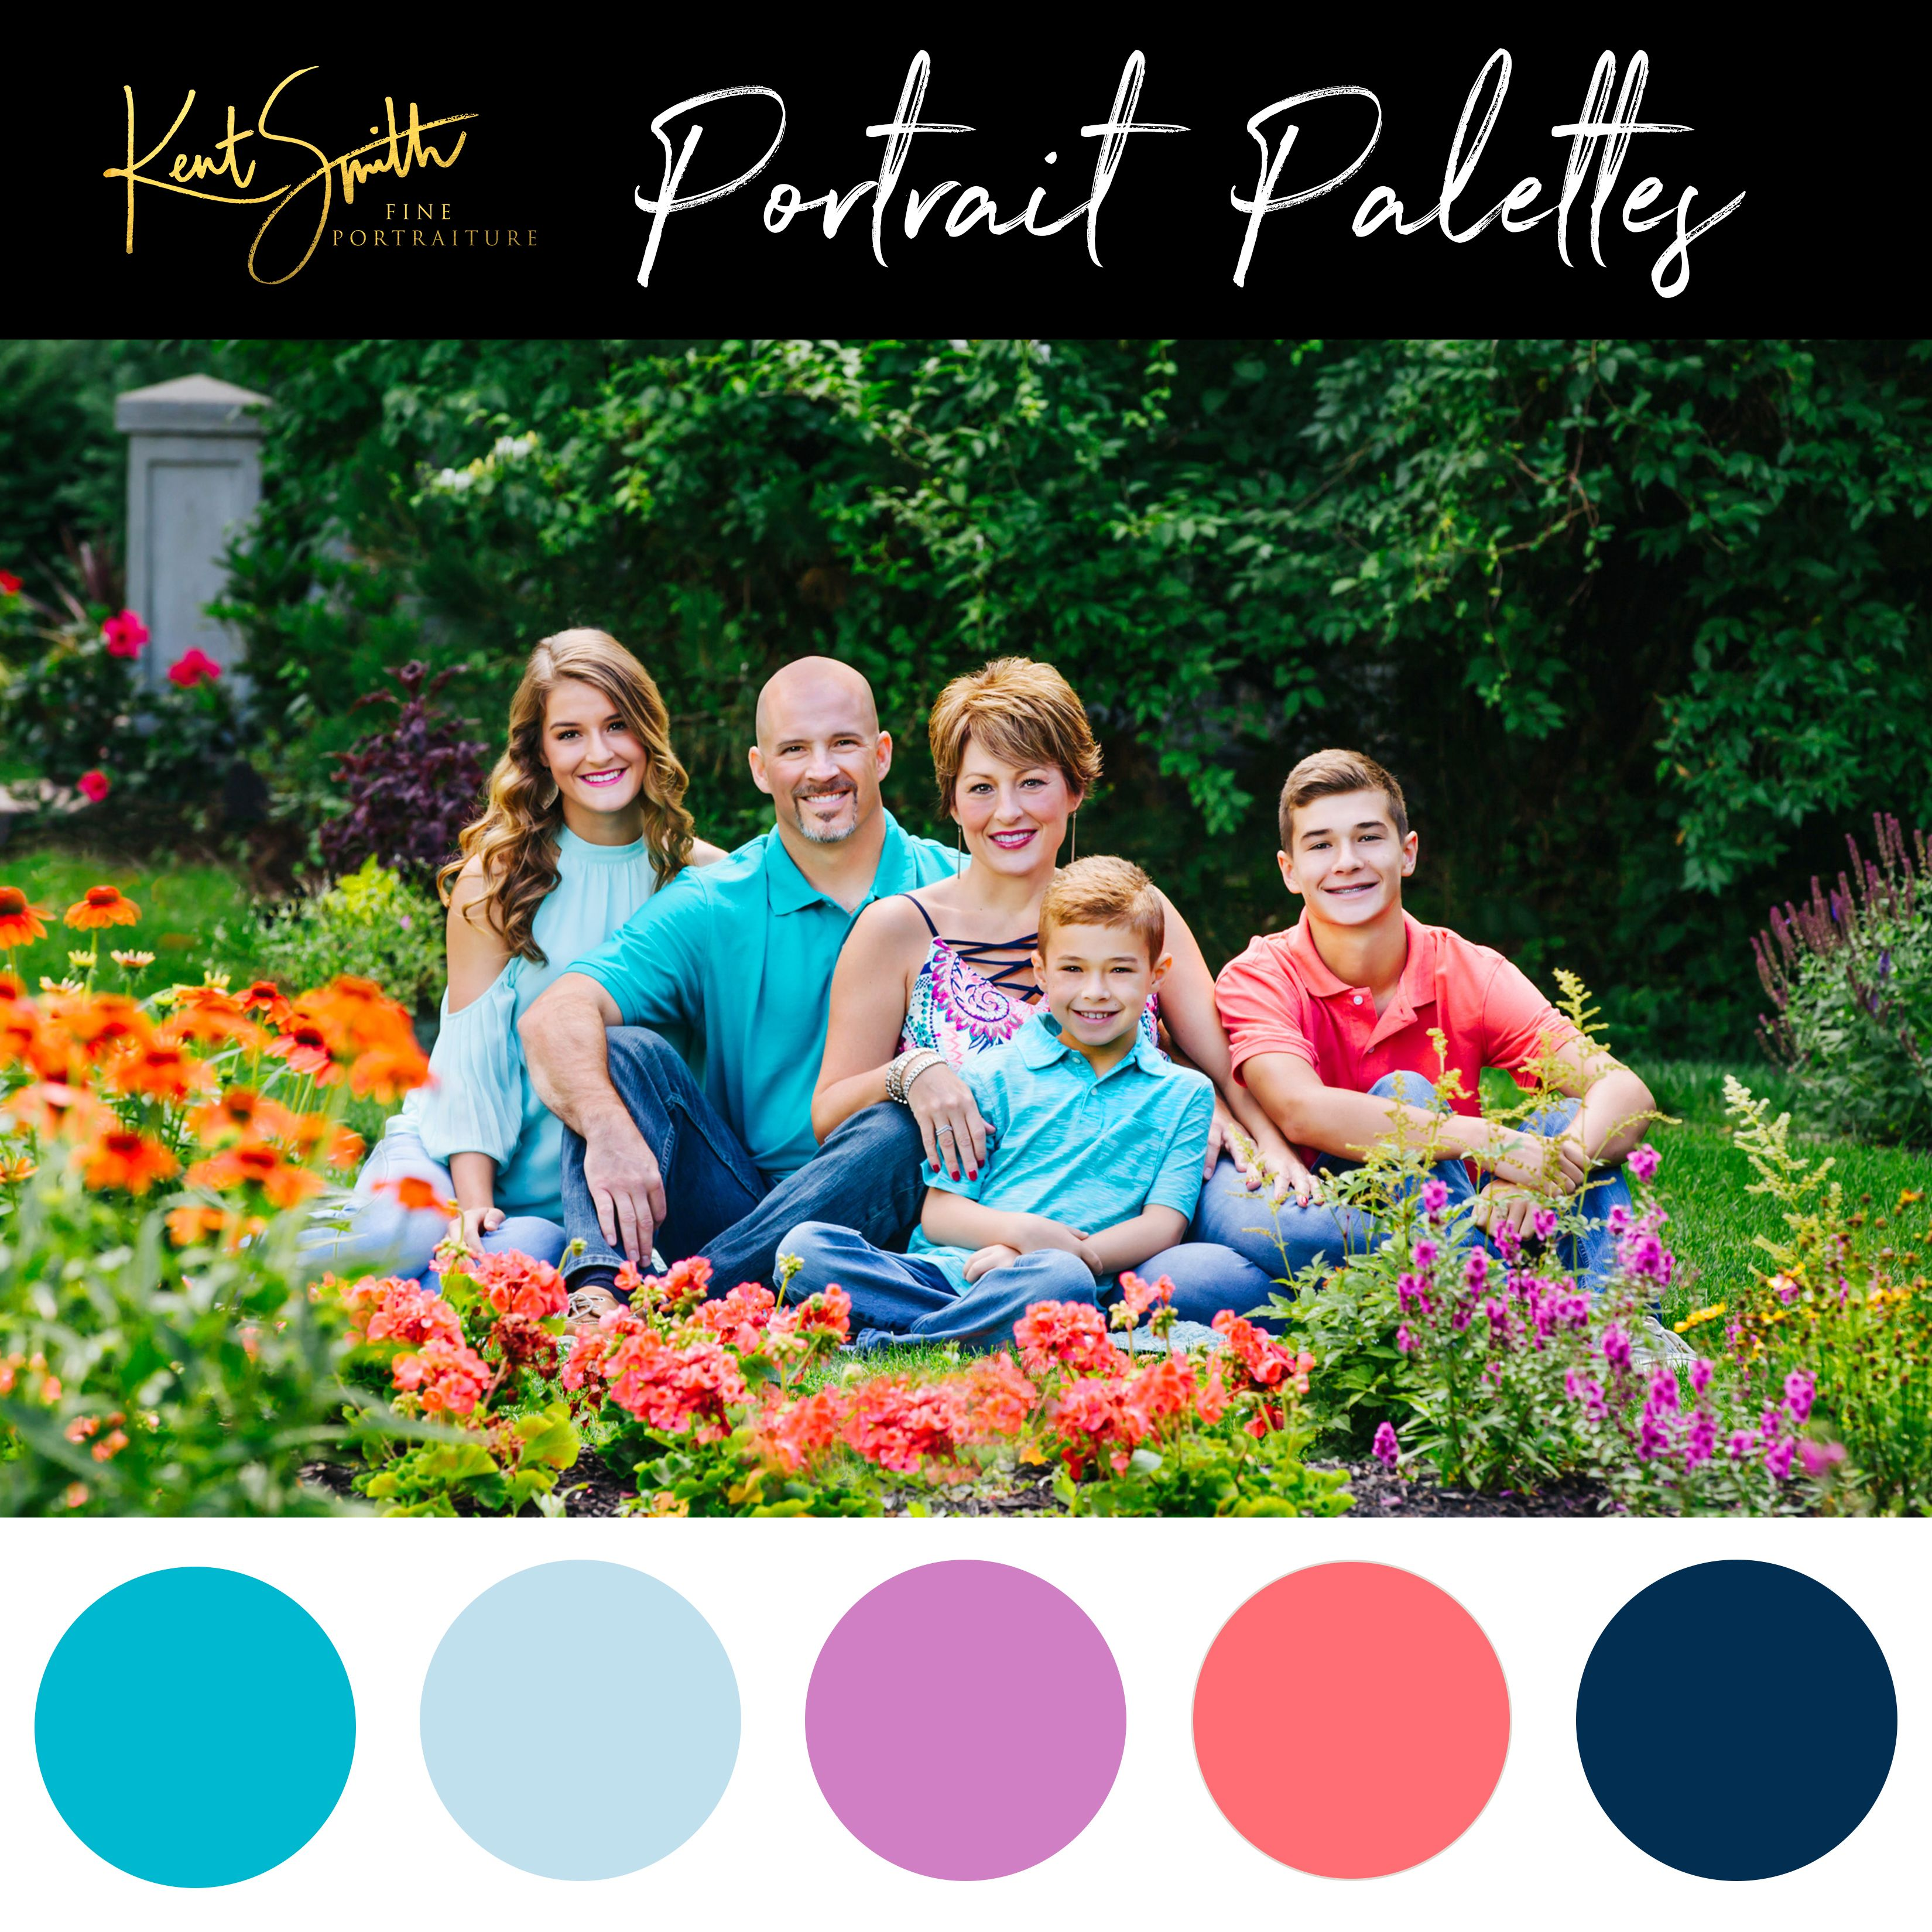 Did Someone Say Summer Here Is An Adorable Color Palette For Your Summer Family Session Summer Family Photos Family Photo Colors Family Picture Colors